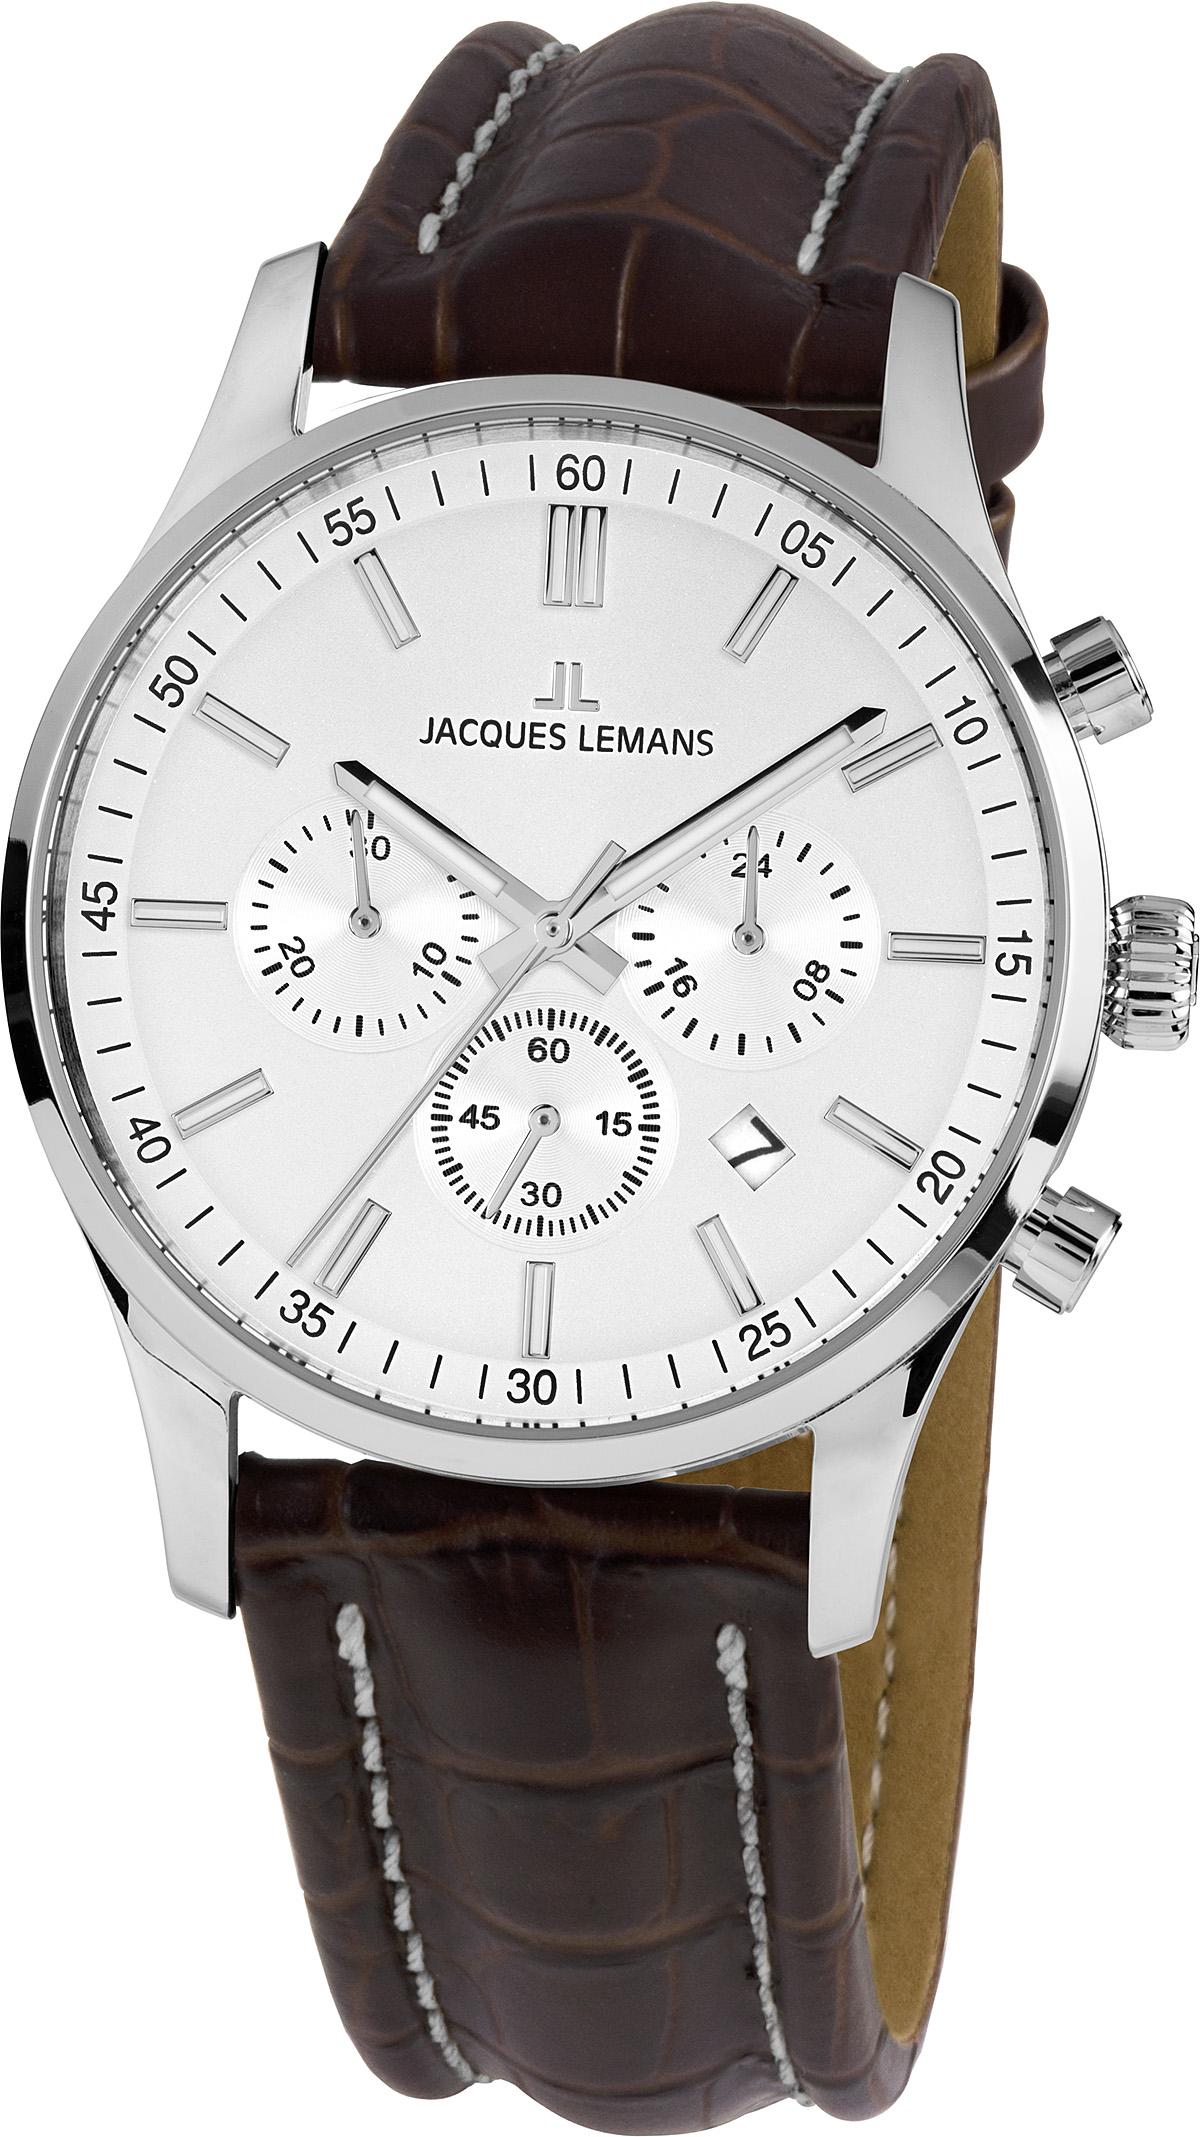 "Jacques Lemans Herrenarmbanduhr ""London"""